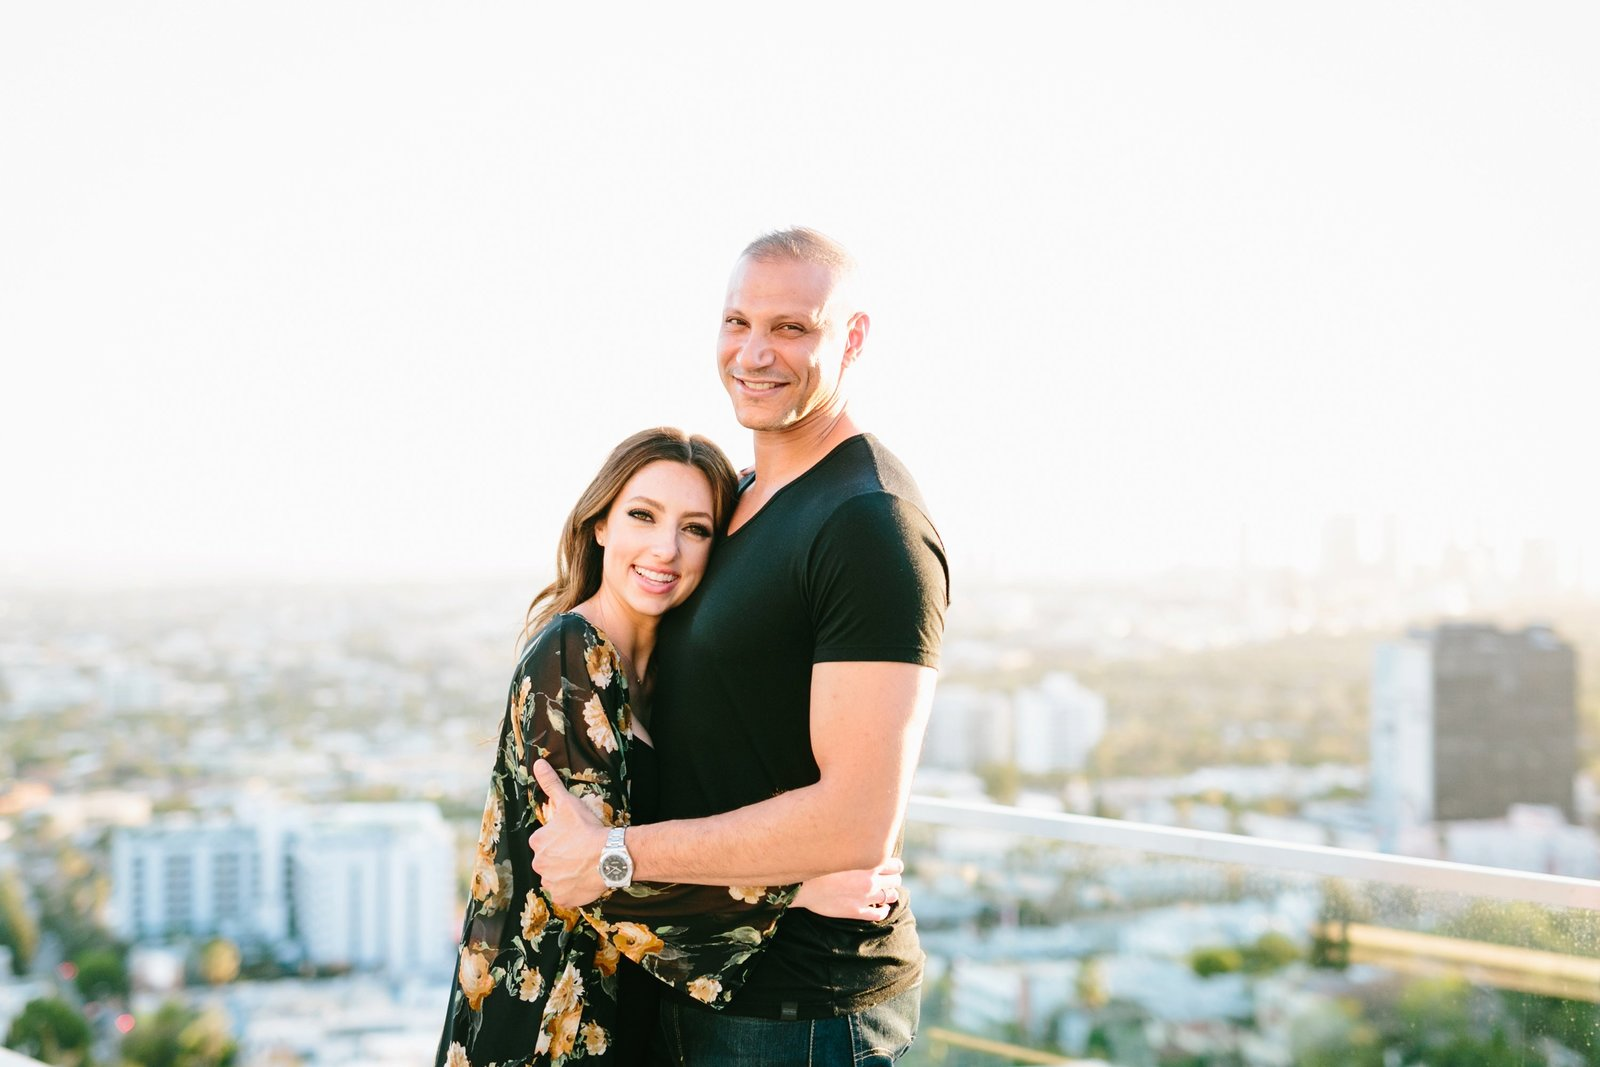 Engagement Photos-Jodee Debes Photography-198